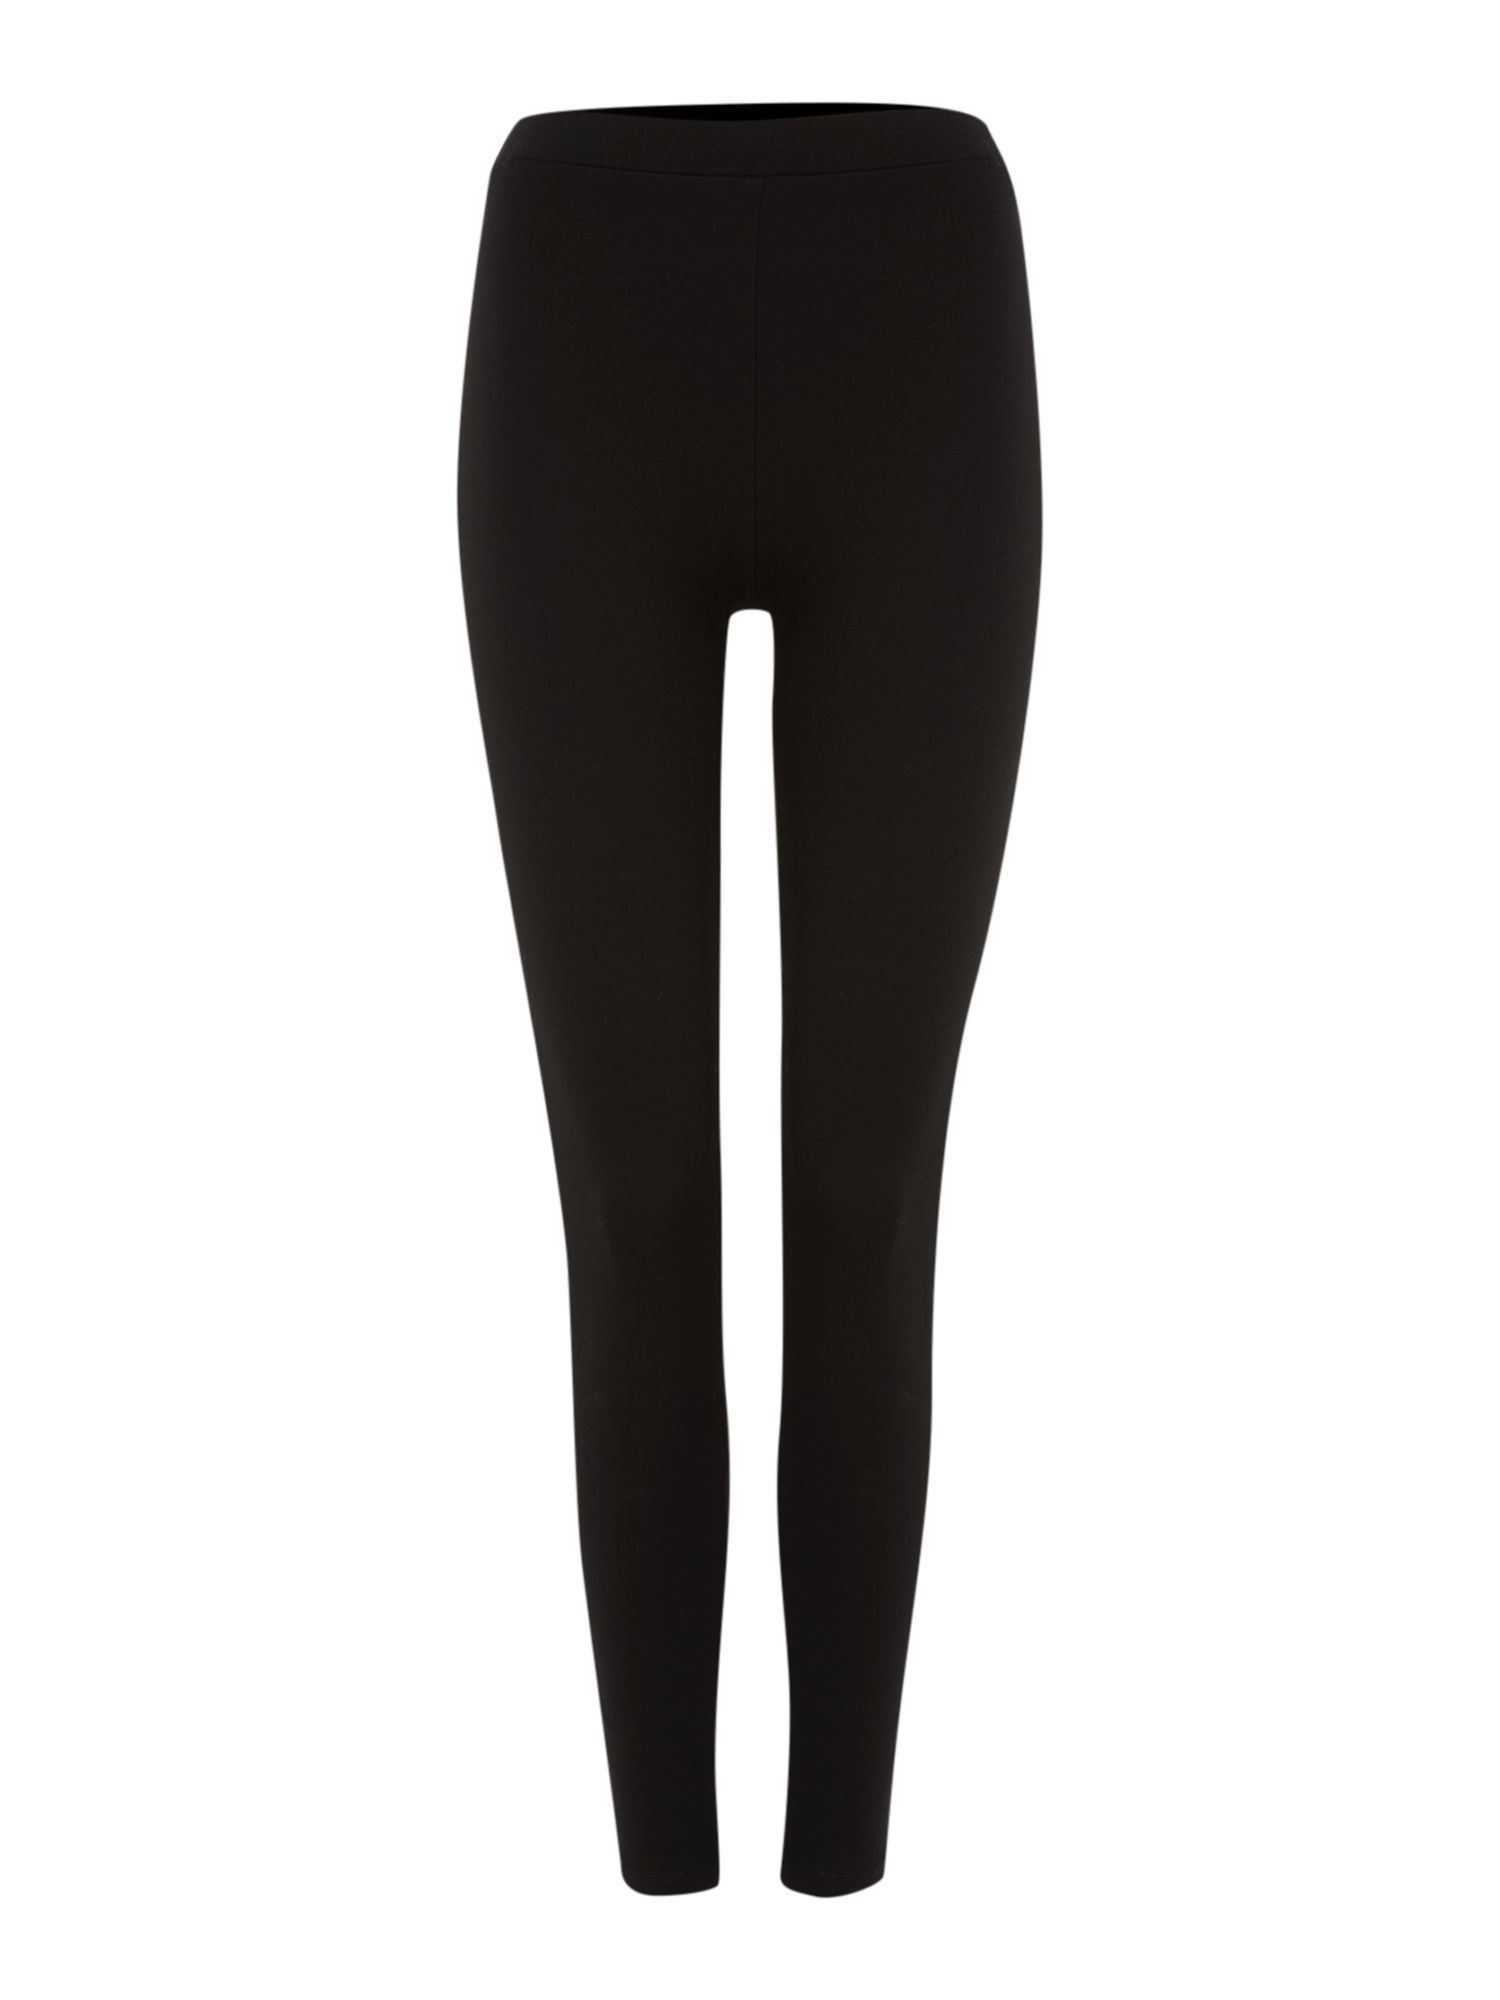 PU Panel leggings